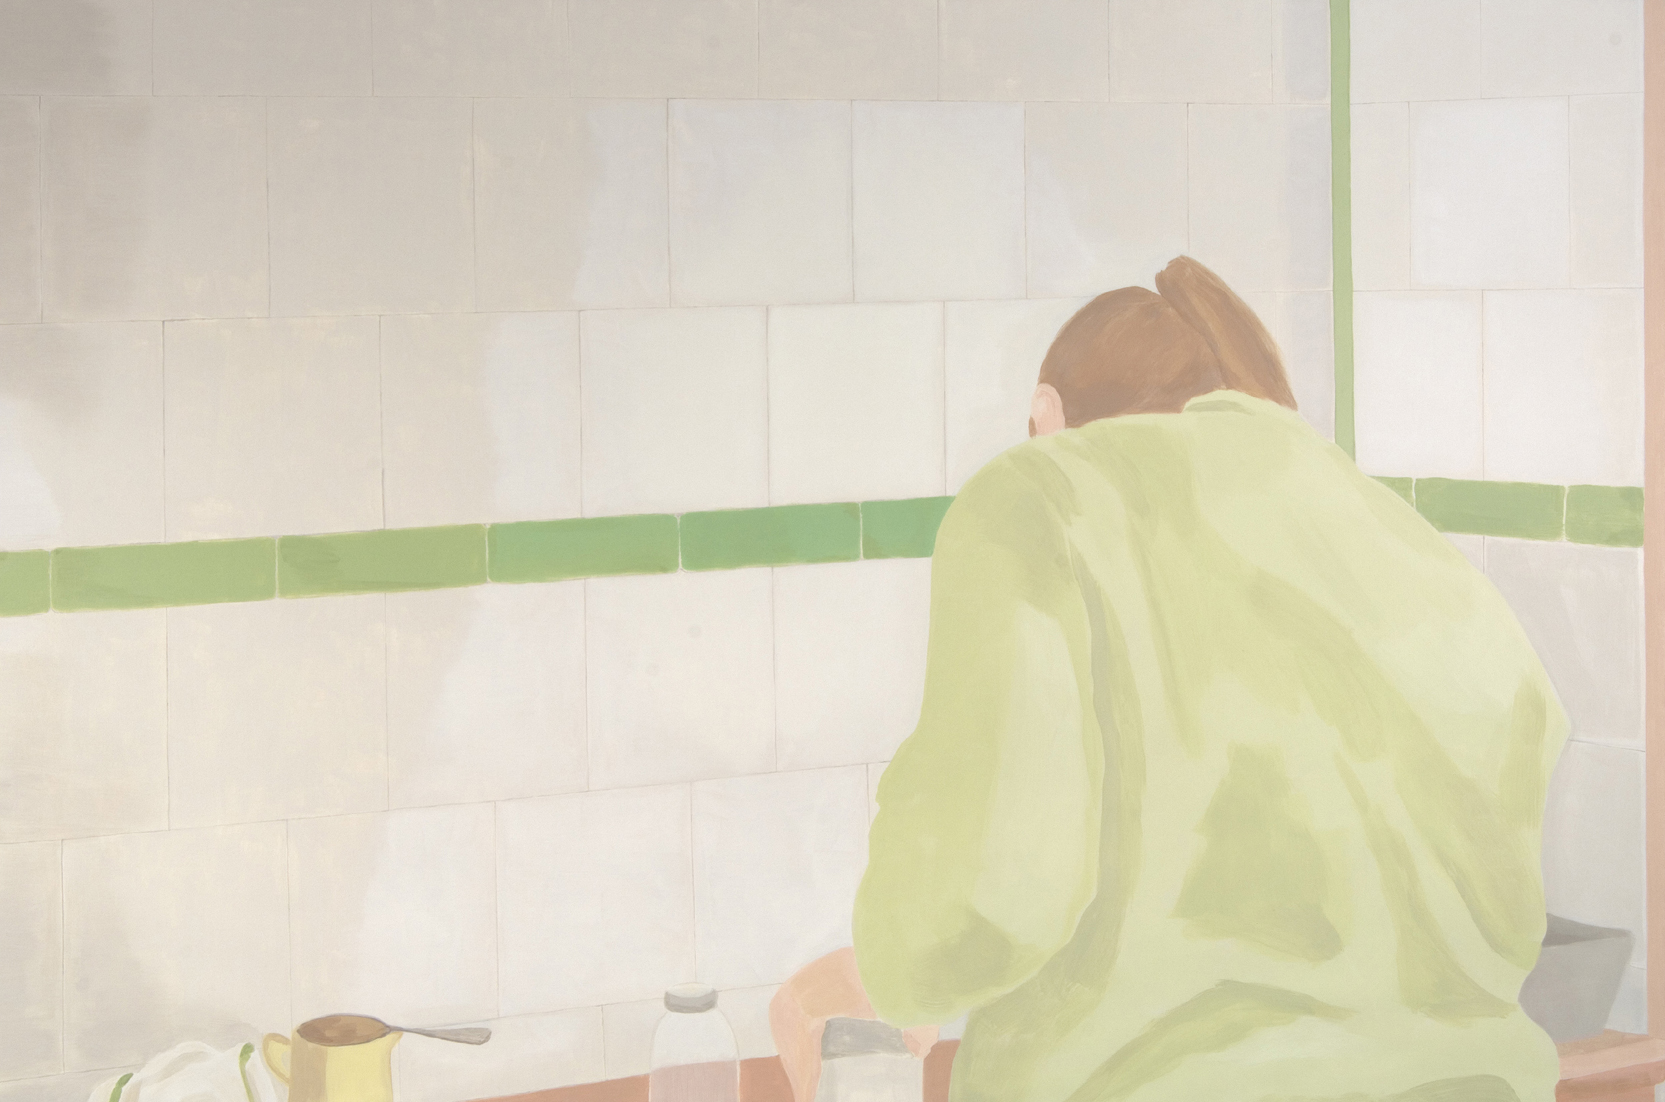 Woman in Kitchen, acrylic on canvas, 86 x 130 inches, 2006.